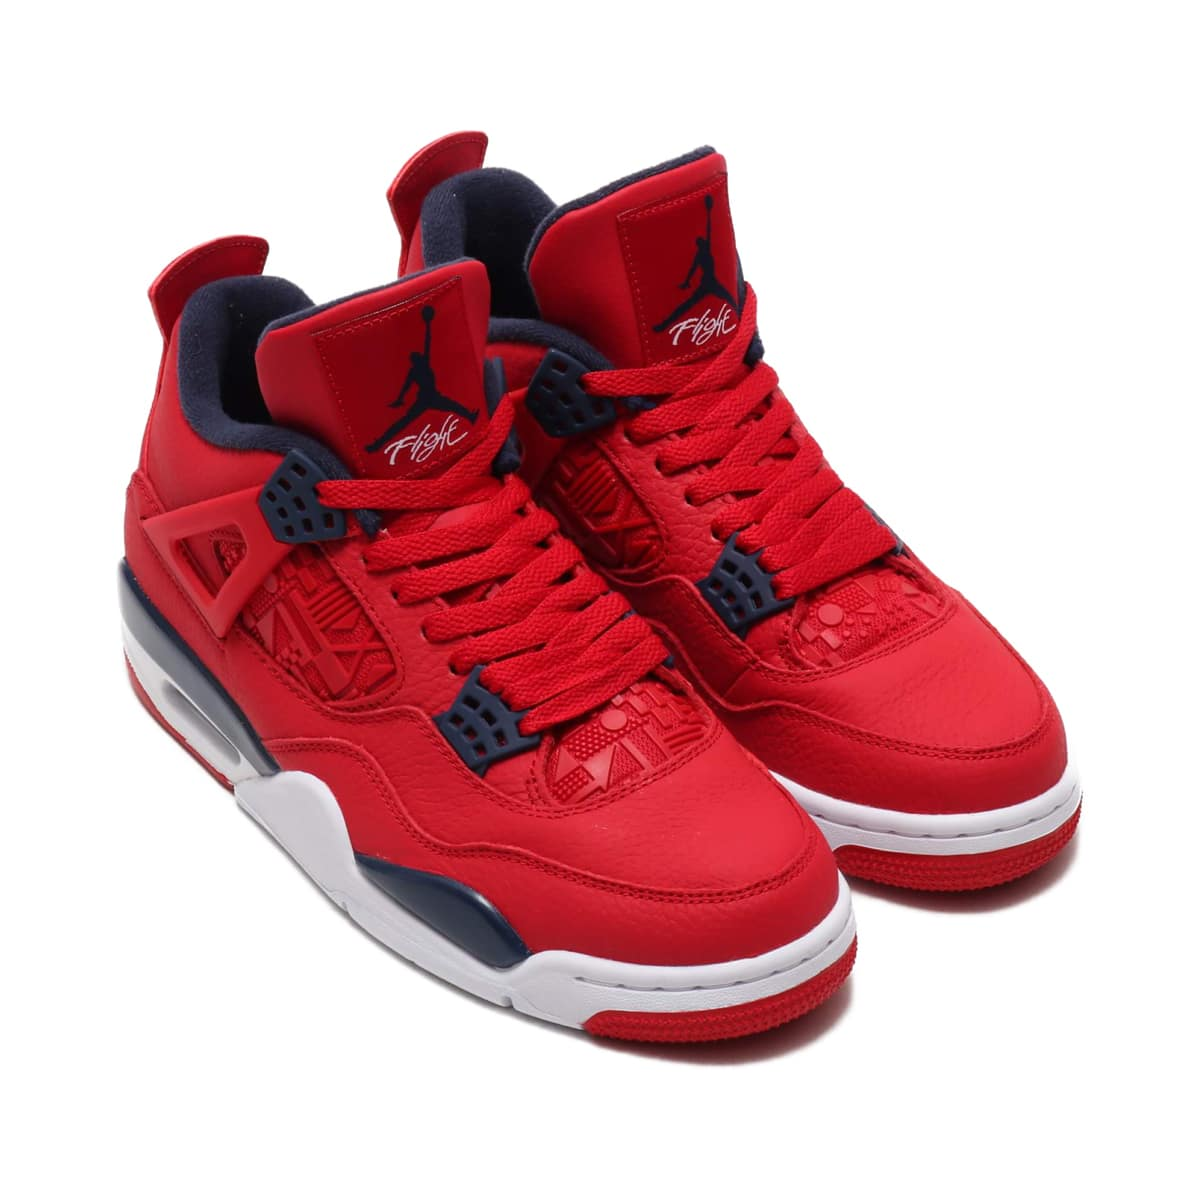 NIKE AIR JORDAN 4 RETRO SE GYM RED/OBSIDIAN-WHITE-METALLIC GOLD 19FA-S_photo_large